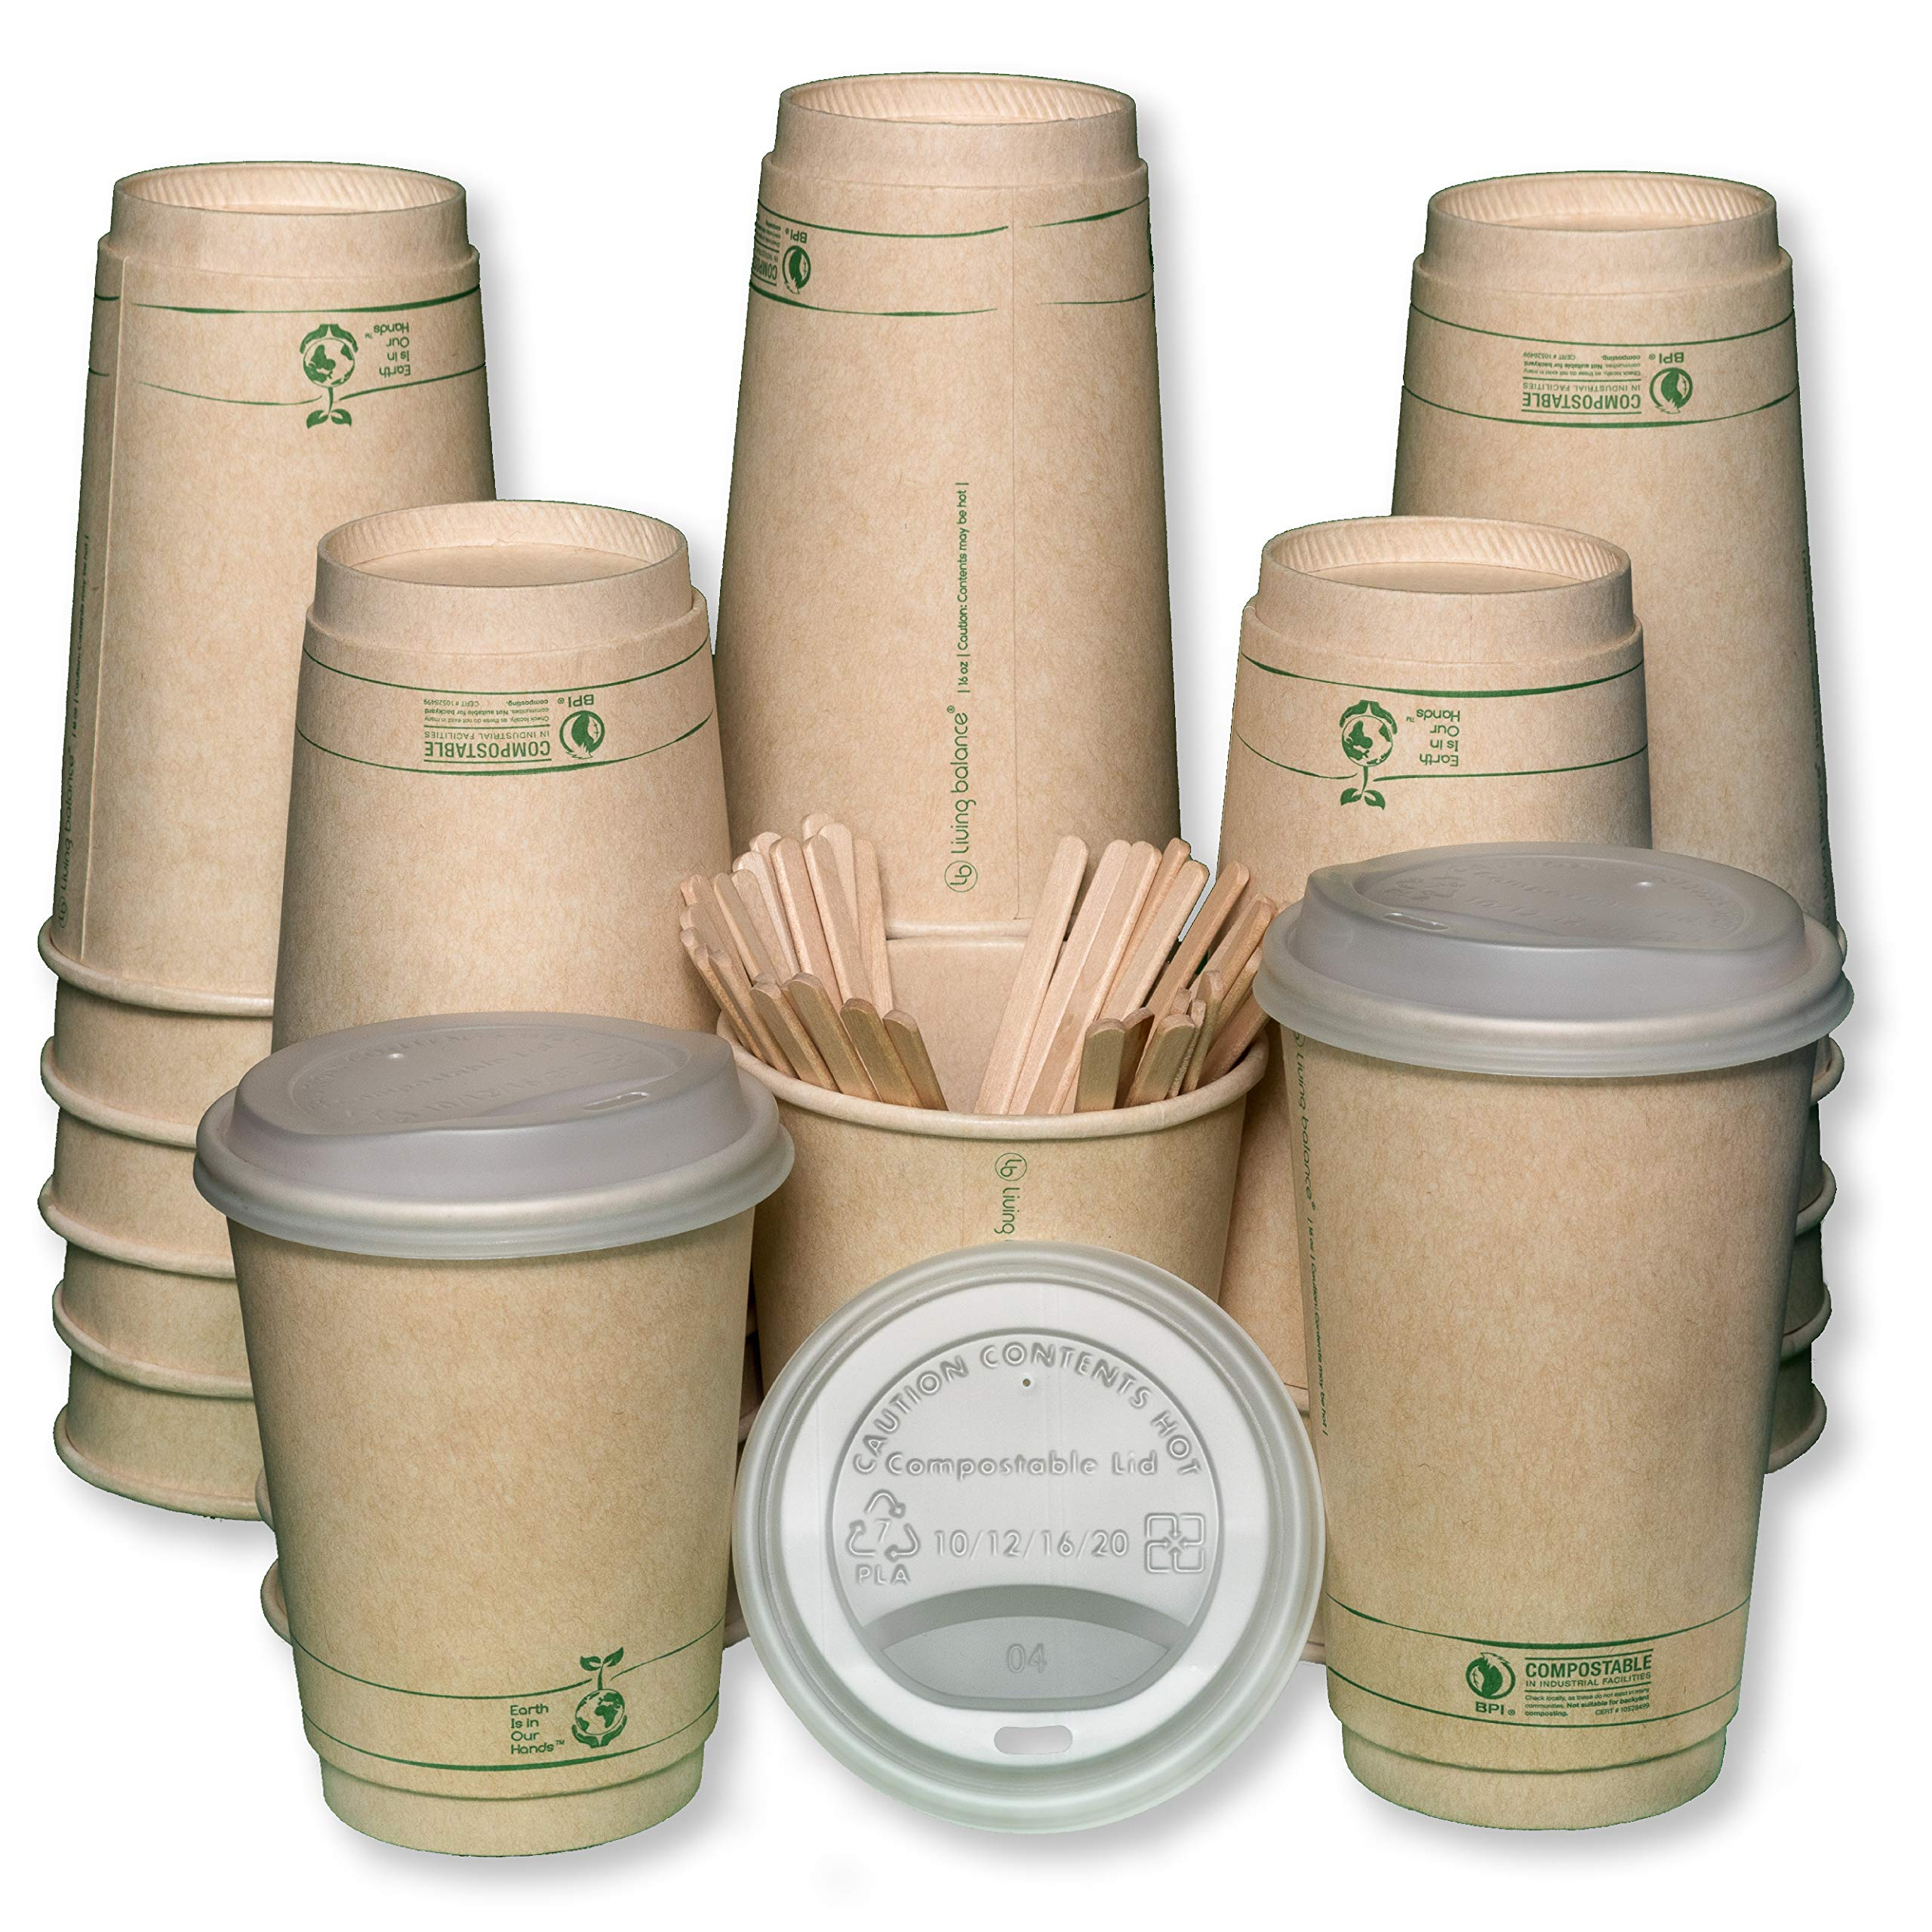 Compostable Disposable Coffee Cups To Go with Lids, Wooden Stirrers, and Integrated Sleeves   [75 Pack - 16 Ounce] - BPI Certified BIOCUPS: PLA, Eco Friendly, Biodegradable, Cups - Living Balance